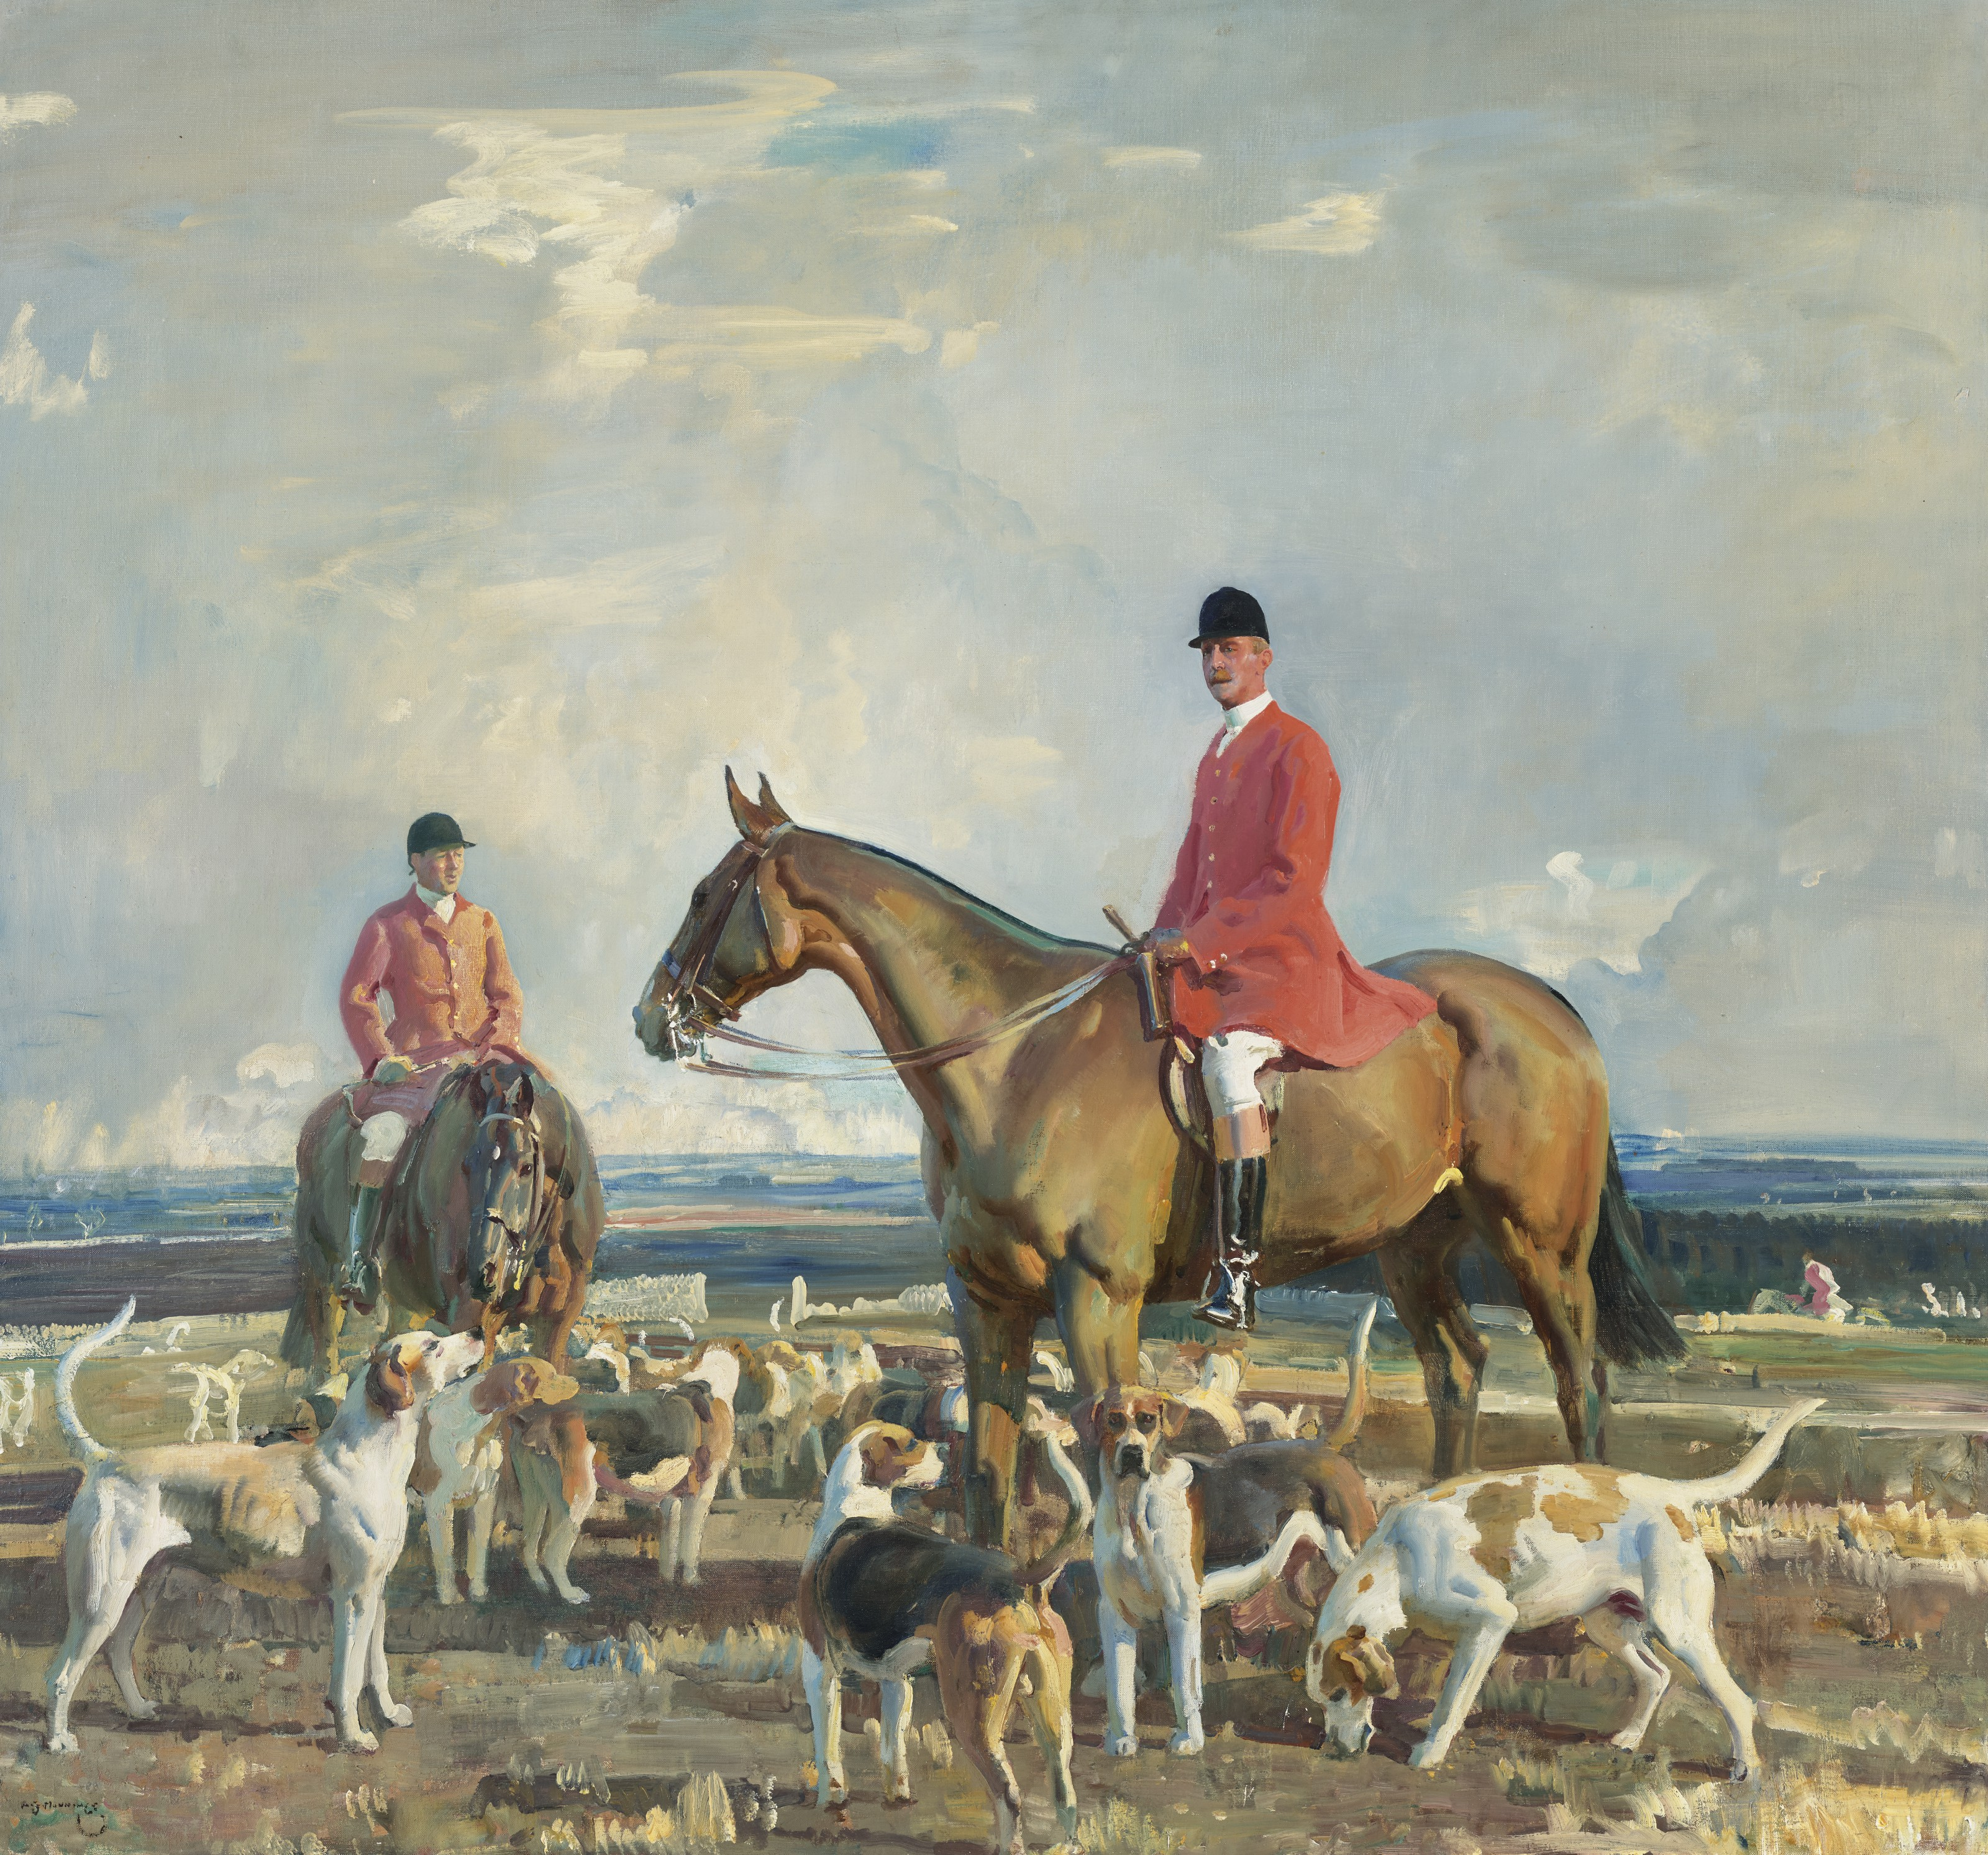 Sir Alfred James Munnings, P.R.A., R.W.S. (British, 1878-1959), The Seventh Earl of Bathurst, M.F.H. of the V.W.H. with Will Boore, Huntsman, 1921. Oil on canvas. 38 x 40½  in (96.5 x 102.9  cm). Estimate $400,000-600,000. Offered in European Art Part I on 13 October 2021 at Christie's in New York